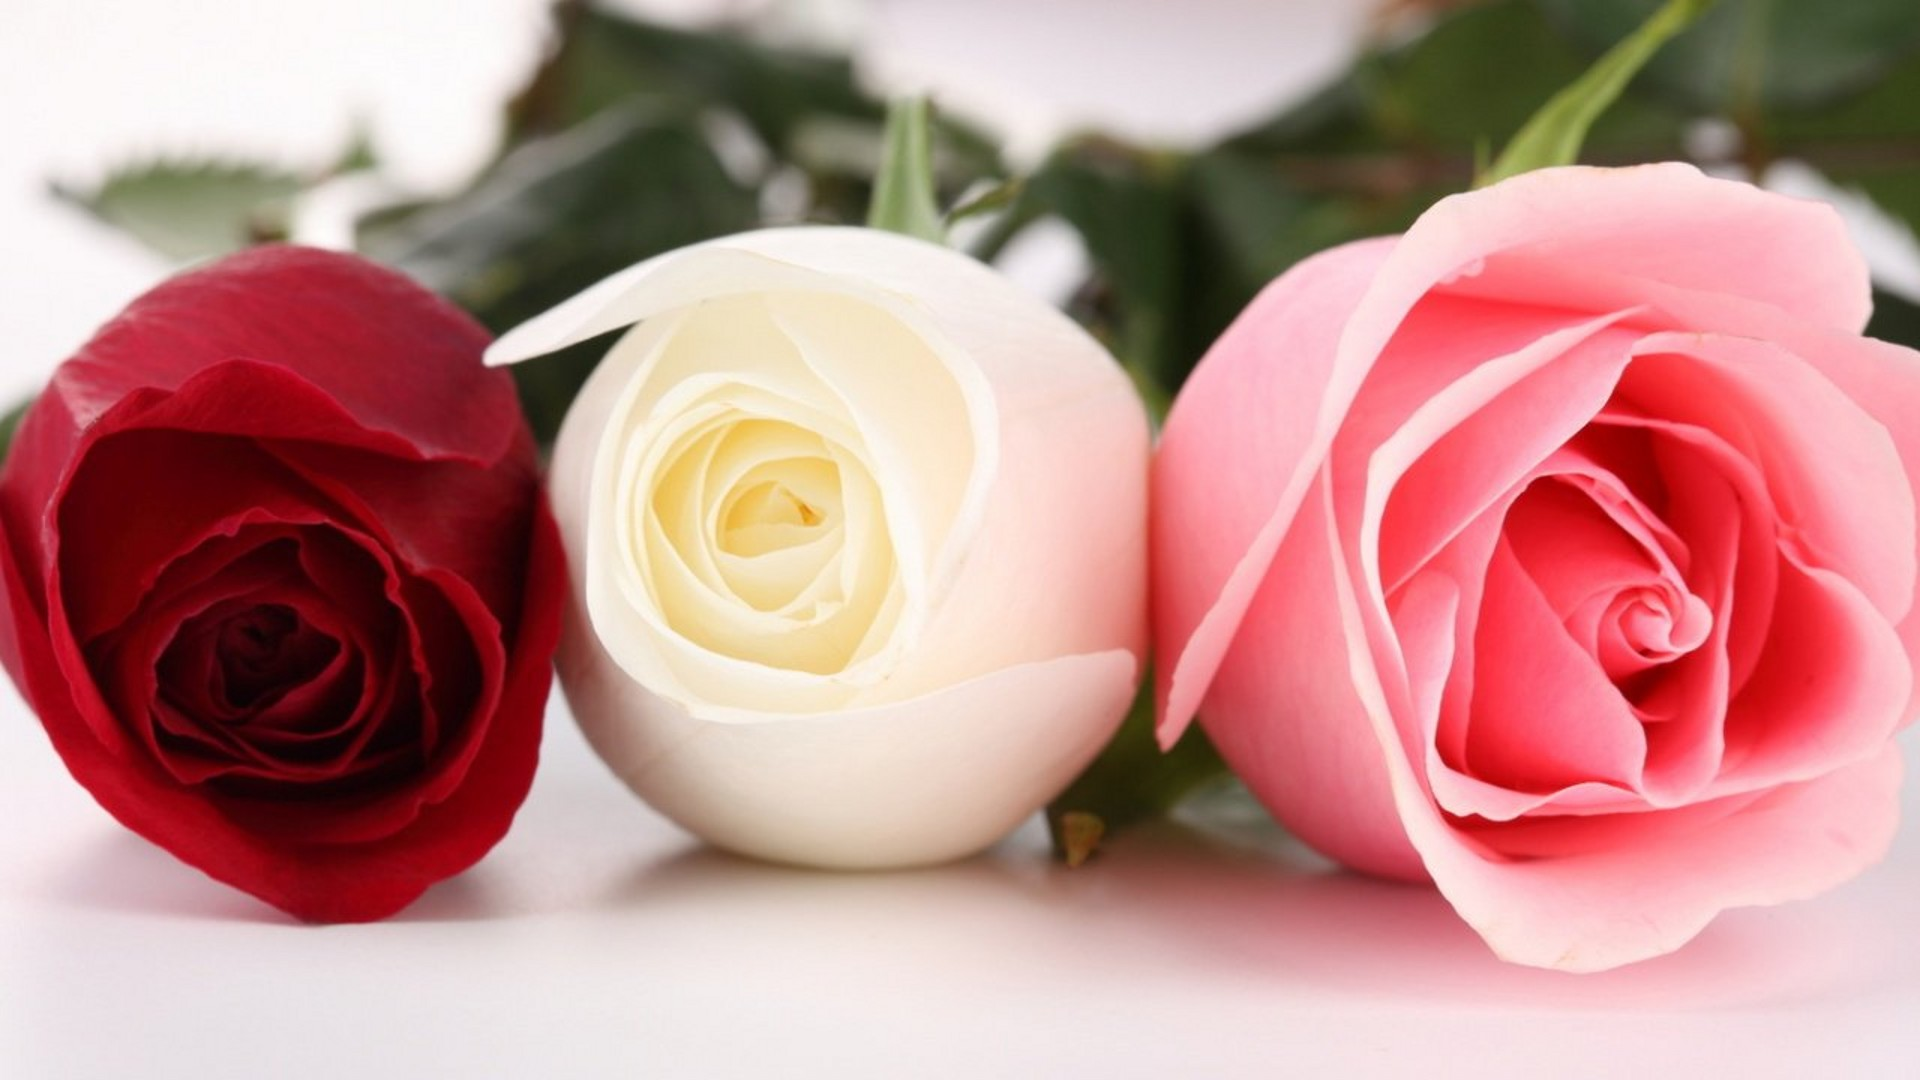 3roses flower beautiful hd views images photos download